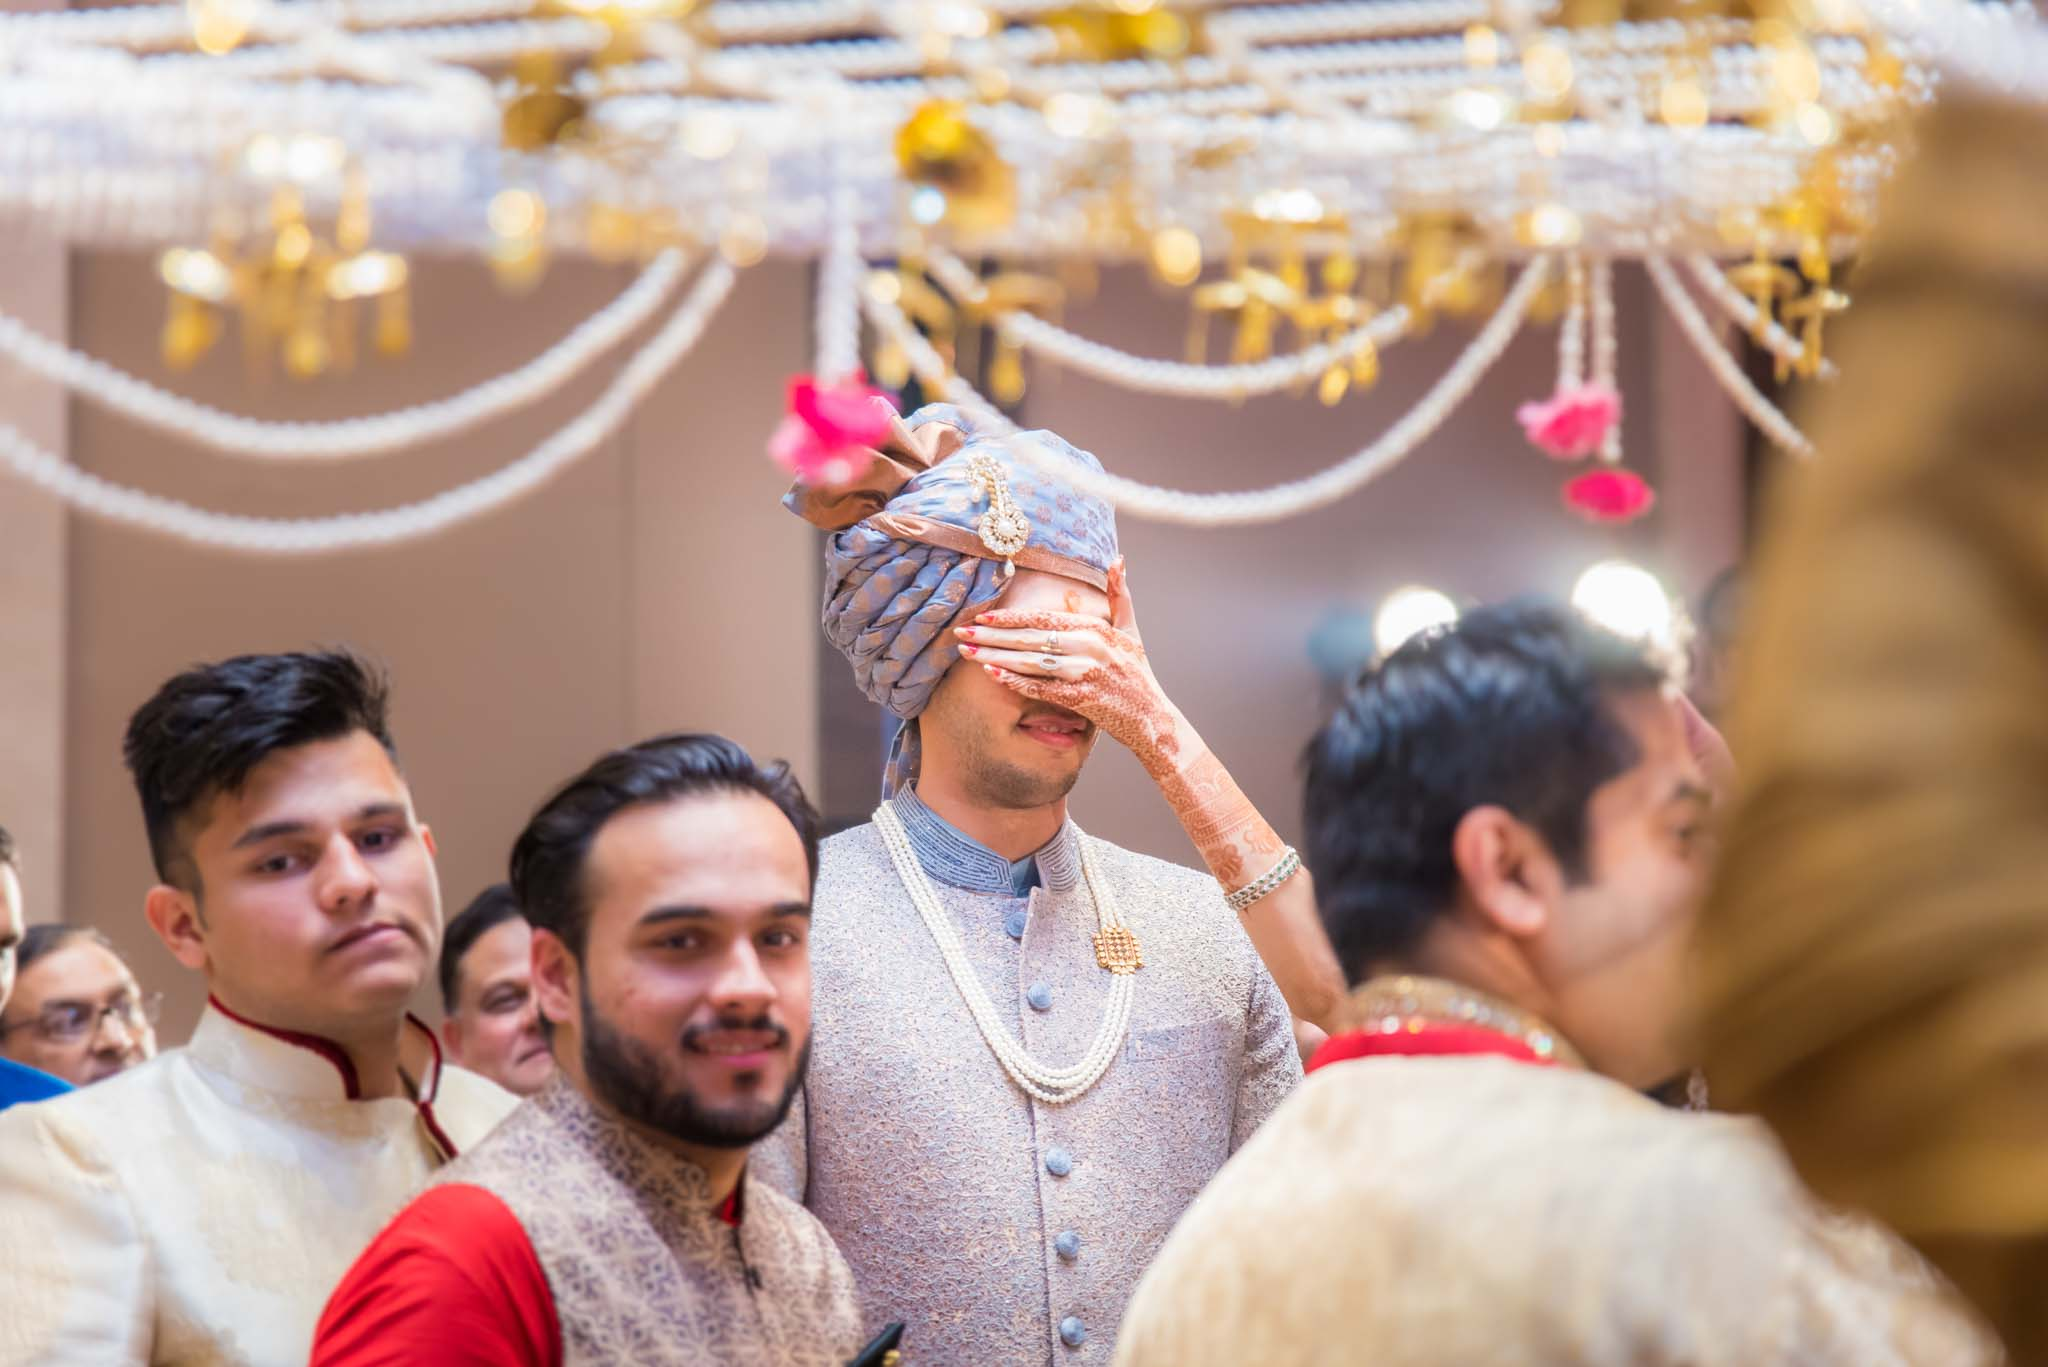 StRegis-Palladium-Mumbai-Candid-Wedding-Photography-32